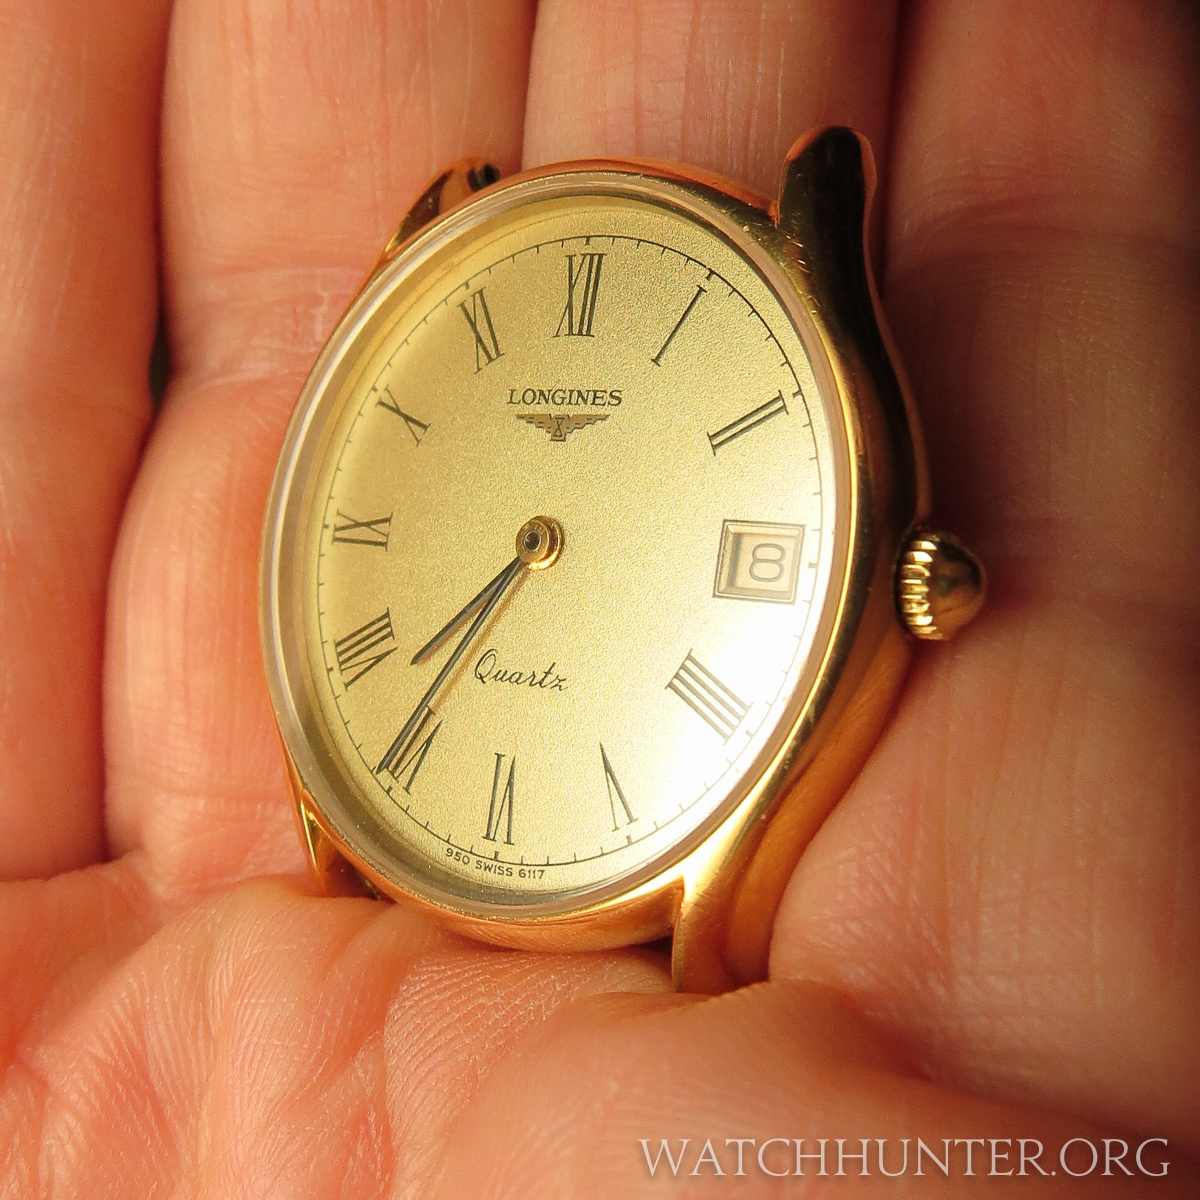 This small Longines watch was owned by both my father and grandfather.